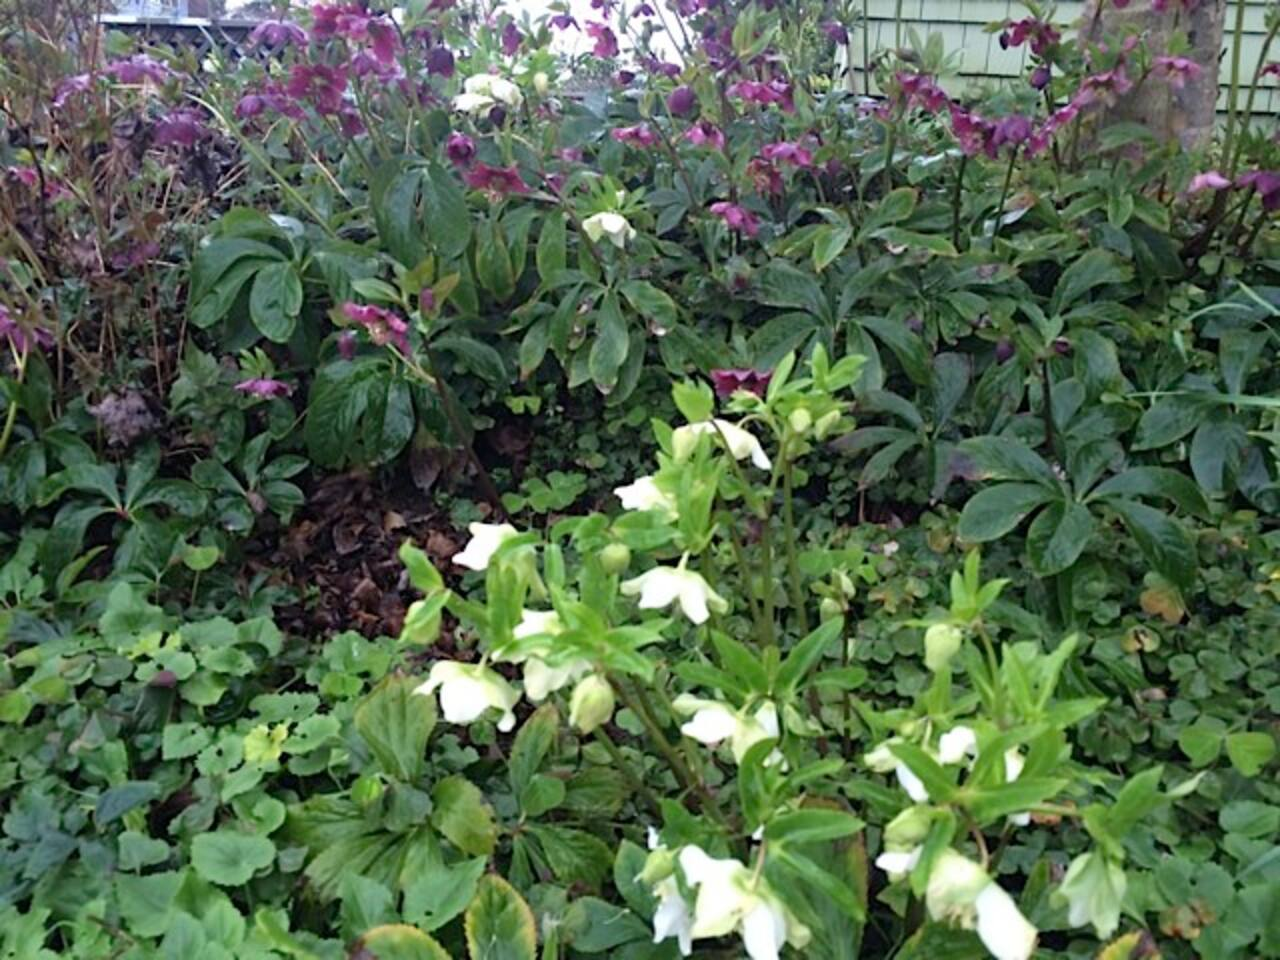 Hundreds of Hellebore blooms in the winter